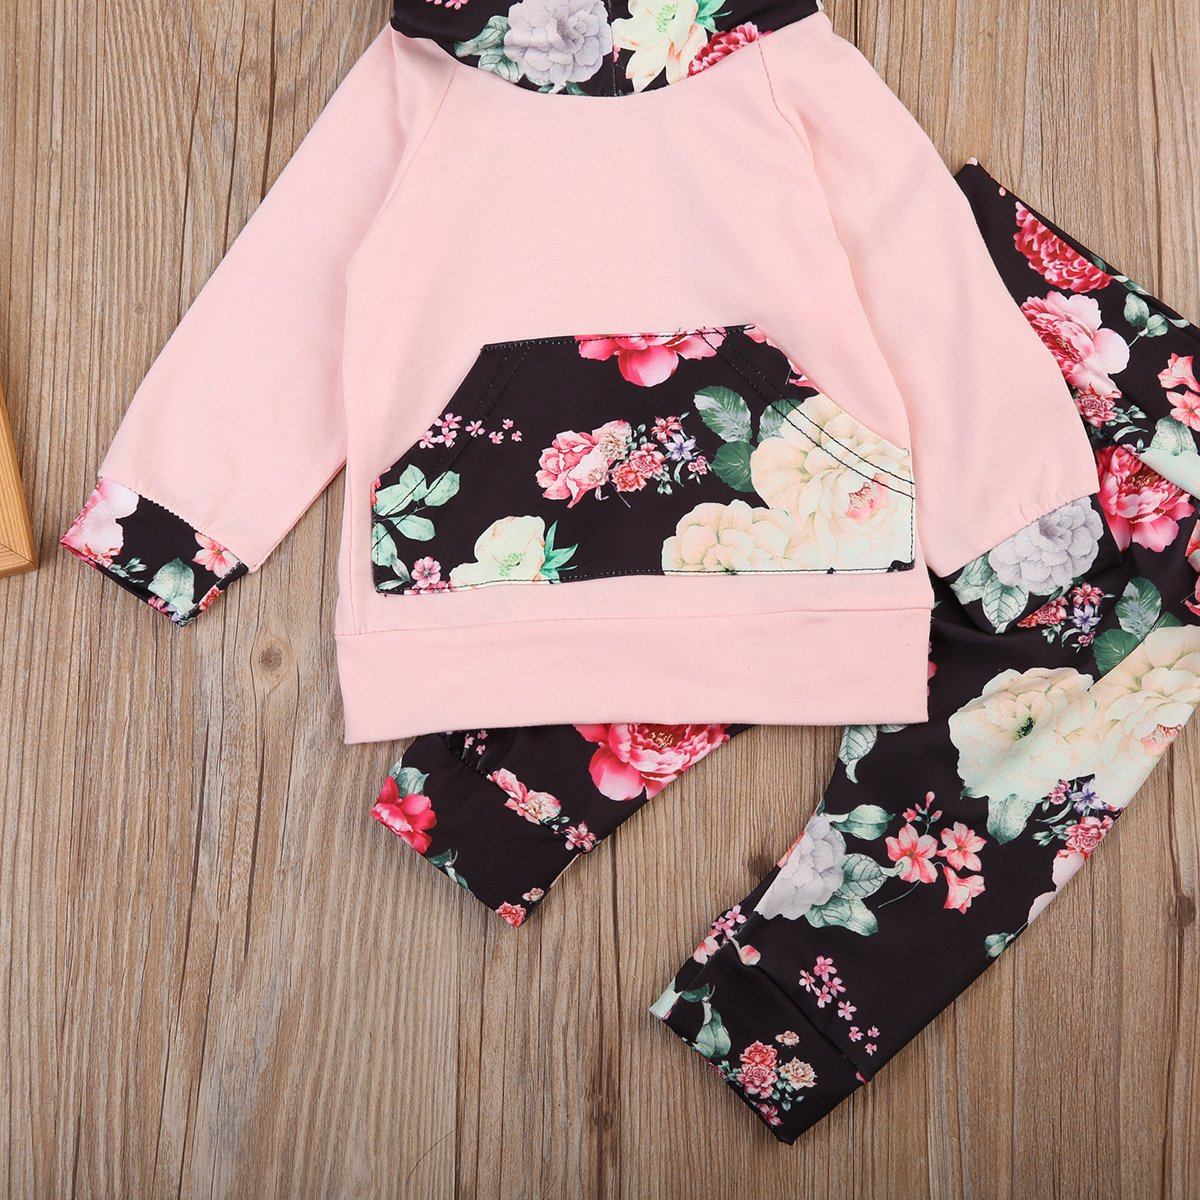 Newborn Baby Girl Winter Floral Hoodie Sweatshirt Long Flowers Pants Outfits Set with Pocket 0-24Months Clothes